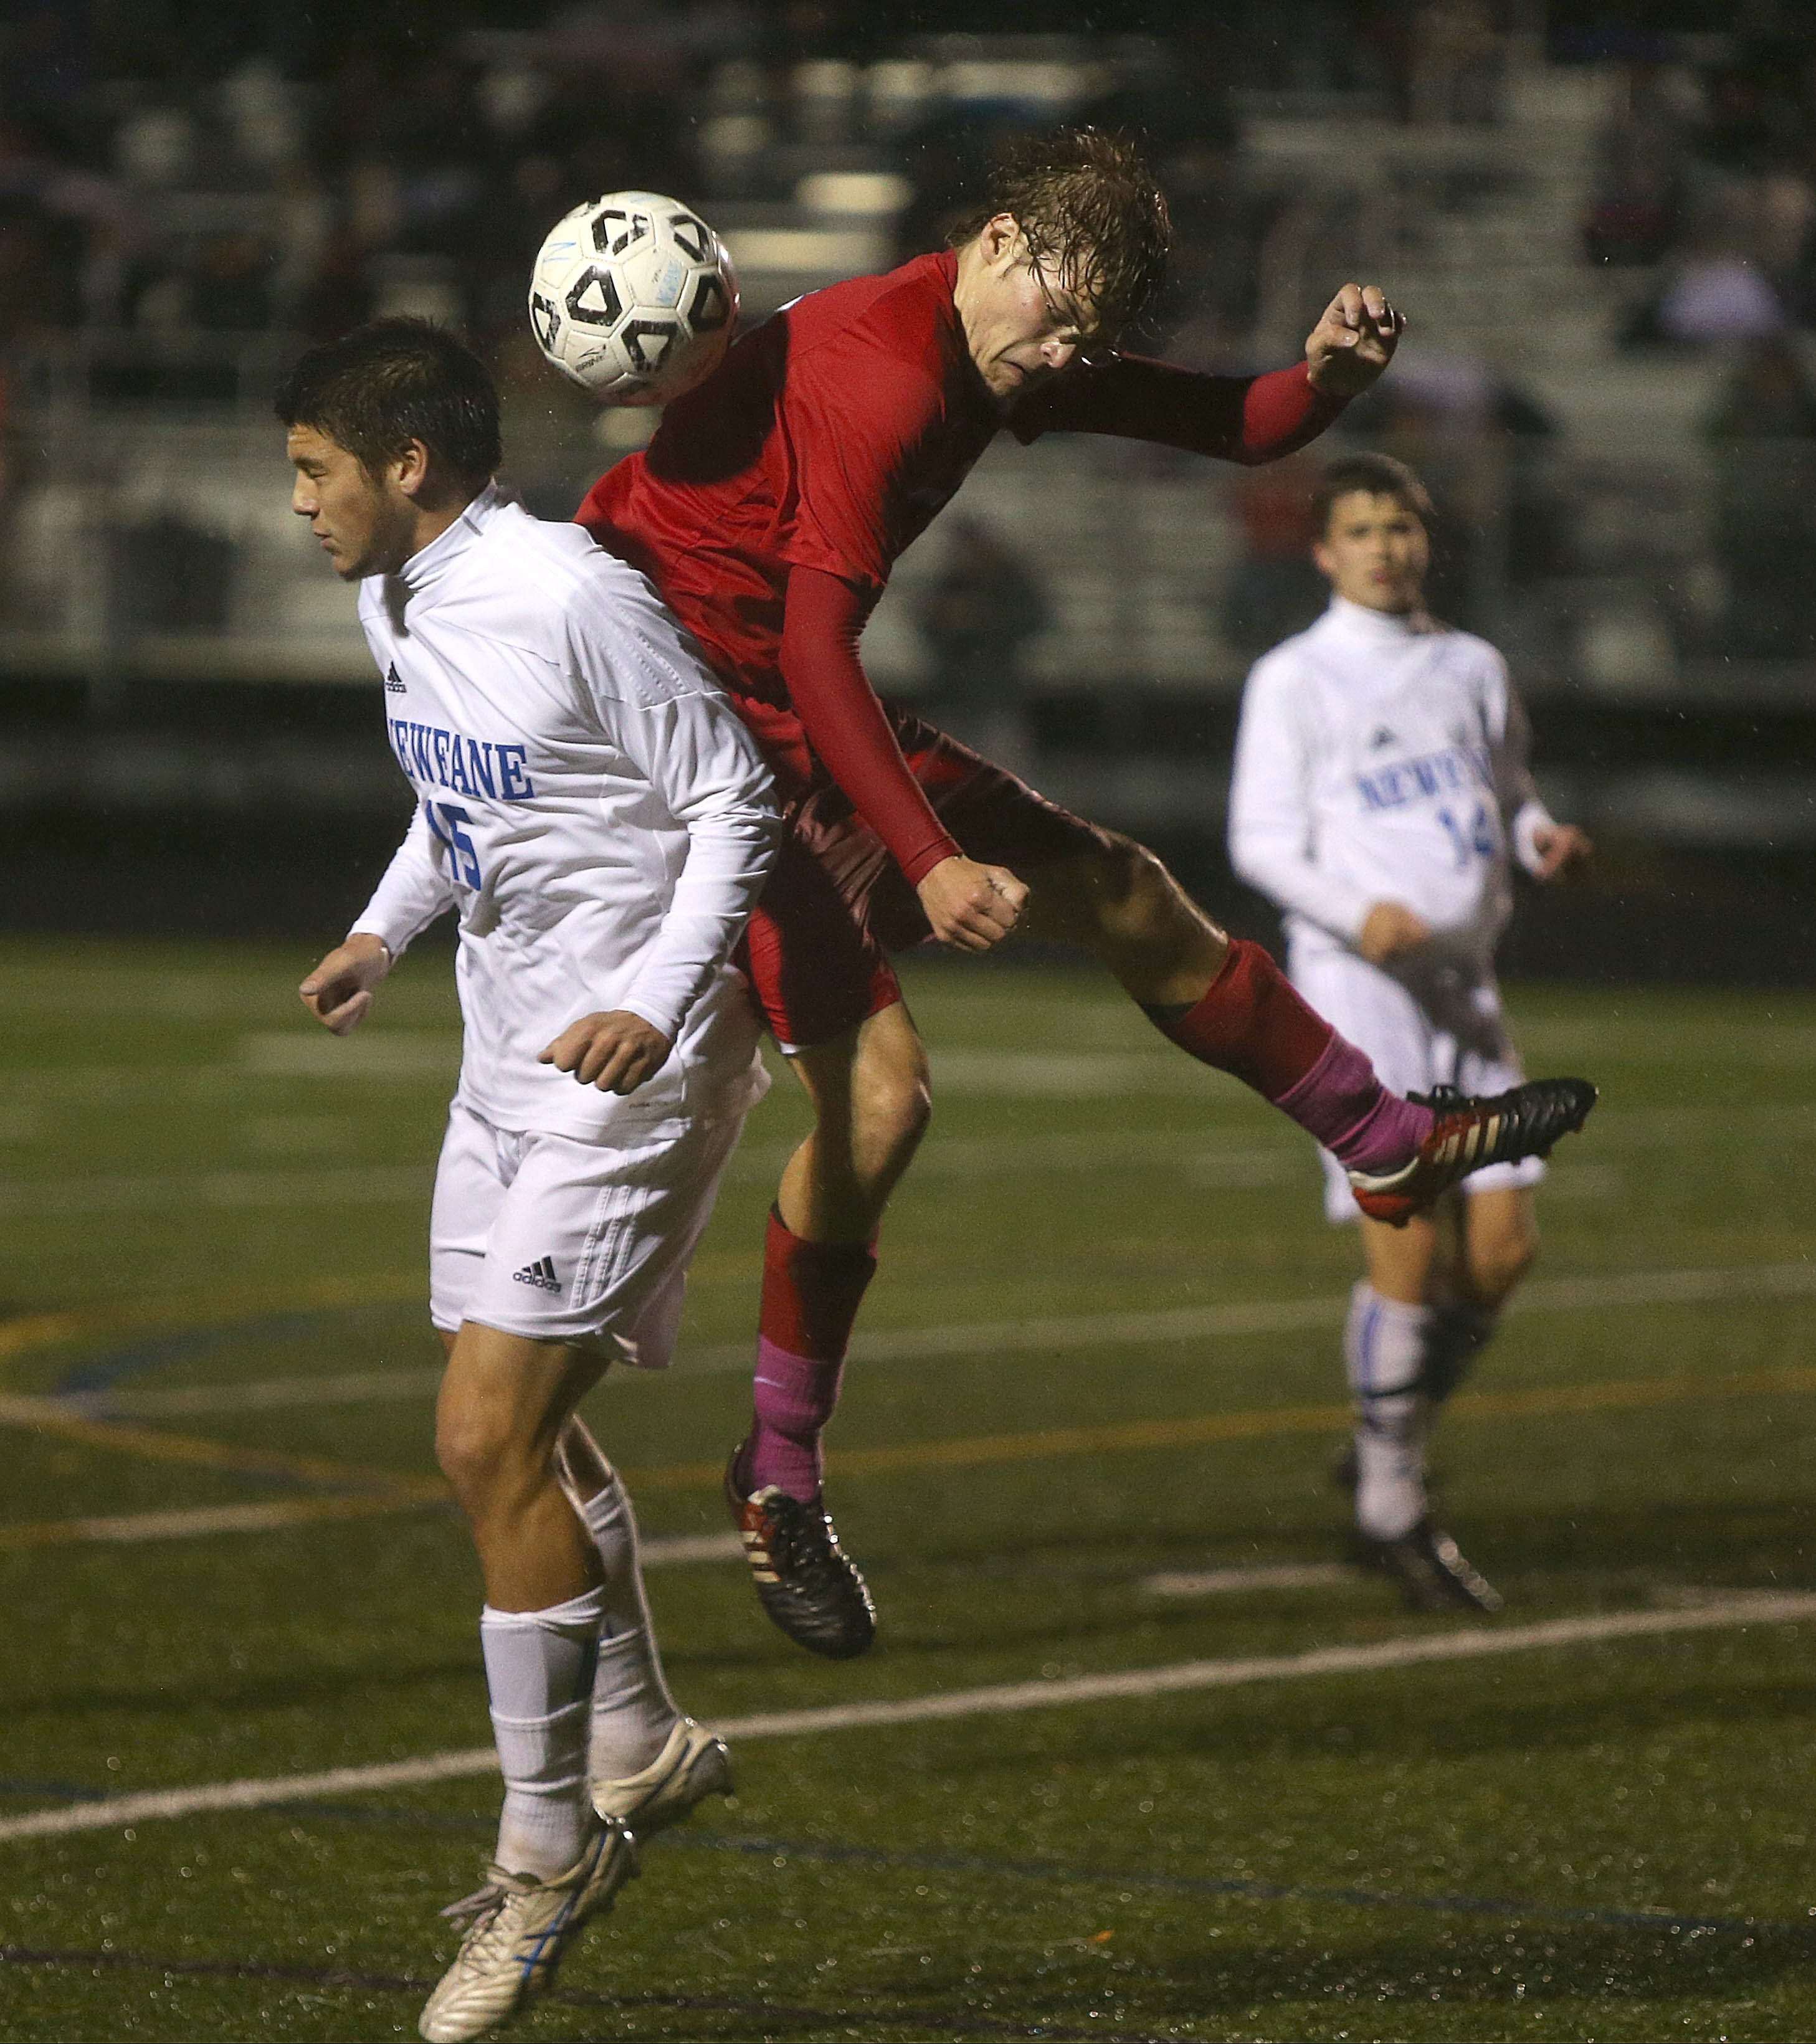 Medina's Hayden Allis, right, and Newfane's Chad Gibson go for the ball in Medina's 2-1 victory in double OT in Class B-1.